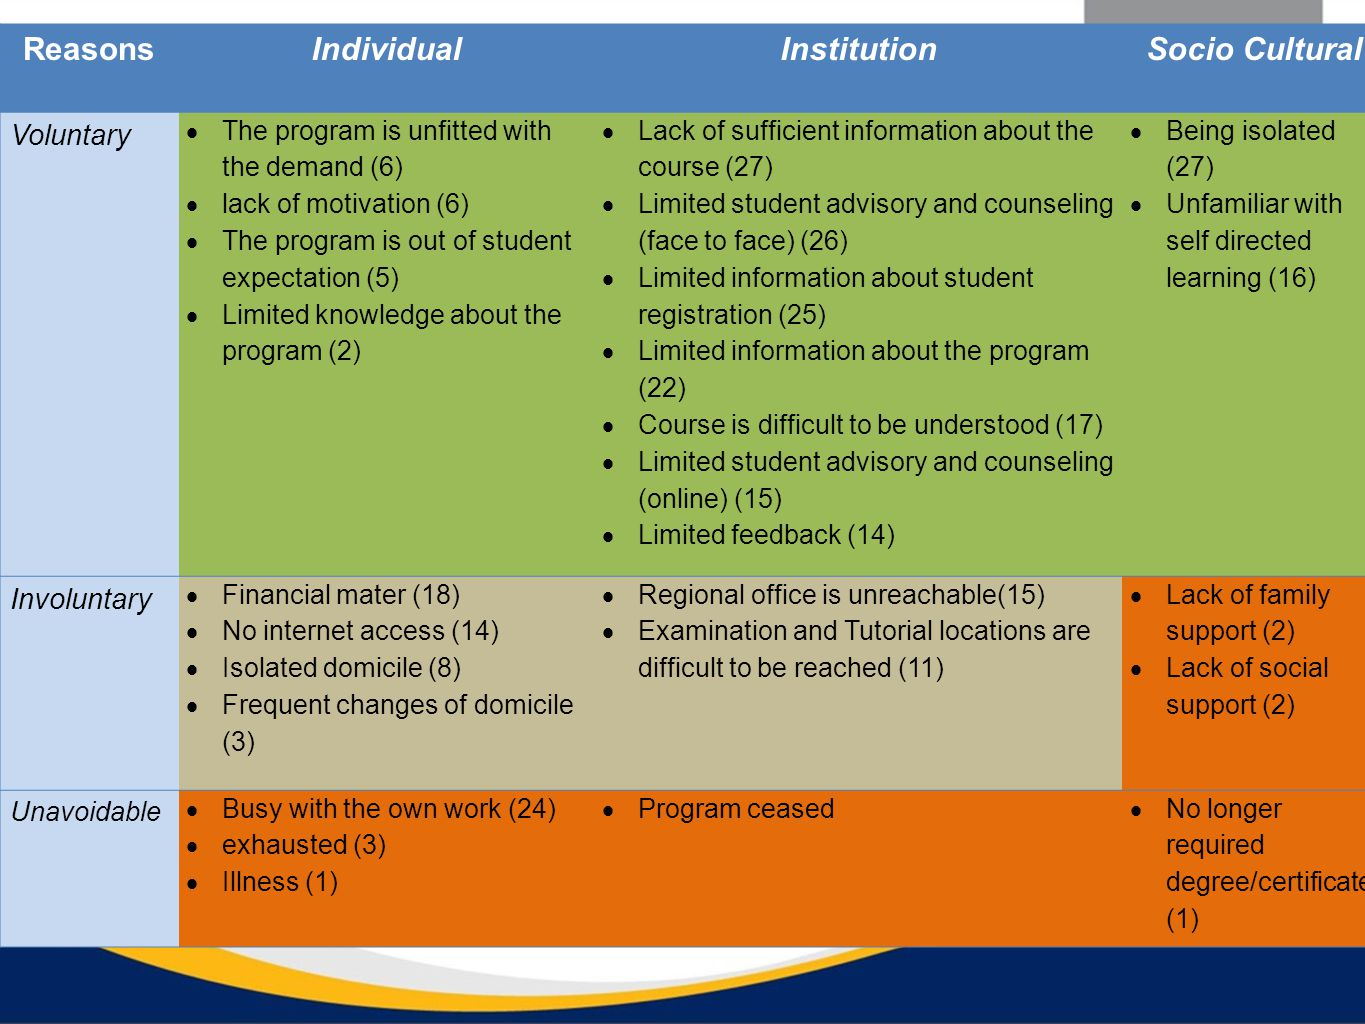 ReasonsIndividualInstitutionSocio Cultural Voluntary  The program is unfitted with the demand (6)  lack of motivation (6)  The program is out of student expectation (5)  Limited knowledge about the program (2)  Lack of sufficient information about the course (27)  Limited student advisory and counseling (face to face) (26)  Limited information about student registration (25)  Limited information about the program (22)  Course is difficult to be understood (17)  Limited student advisory and counseling (online) (15)  Limited feedback (14)  Being isolated (27)  Unfamiliar with self directed learning (16) Involuntary  Financial mater (18)  No internet access (14)  Isolated domicile (8)  Frequent changes of domicile (3)  Regional office is unreachable(15)  Examination and Tutorial locations are difficult to be reached (11)  Lack of family support (2)  Lack of social support (2) Unavoidable  Busy with the own work (24)  exhausted (3)  Illness (1)  Program ceased  No longer required degree/certificate (1)